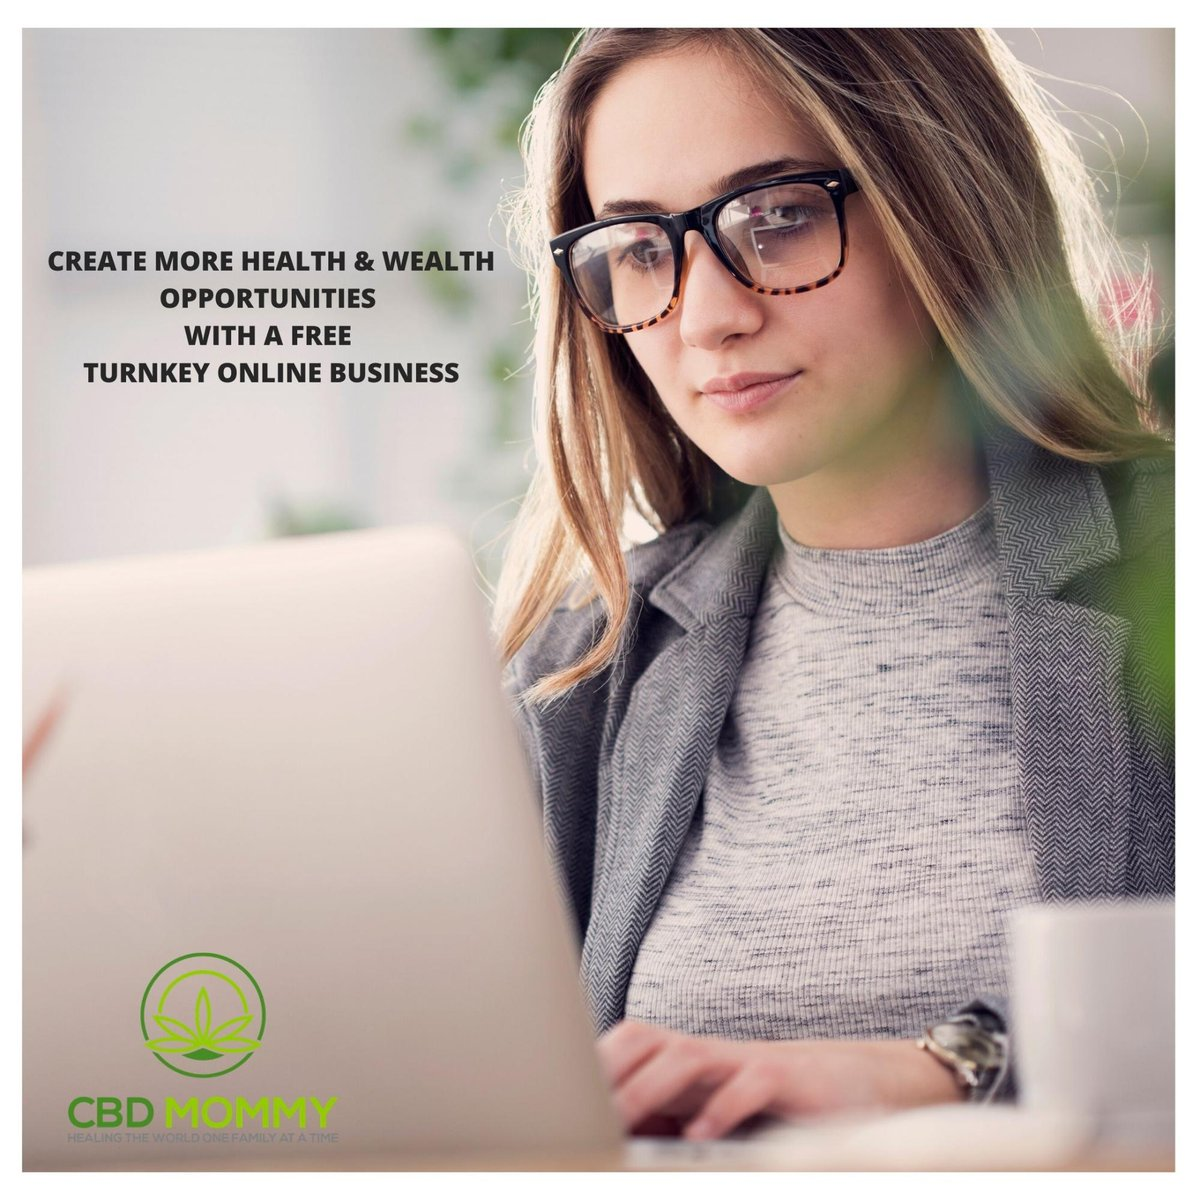 I work with #CTFO which happens to be the Hottest FREE #CBD Business Opportunity in the Market!!! No Credit Card Needed!!! Patented Products 3 Years Ahead of the Competition🏆 🤯I PROVIDE MY BUSINESS PARTNERS WITH PRE-SCREENED LEADS 🤯